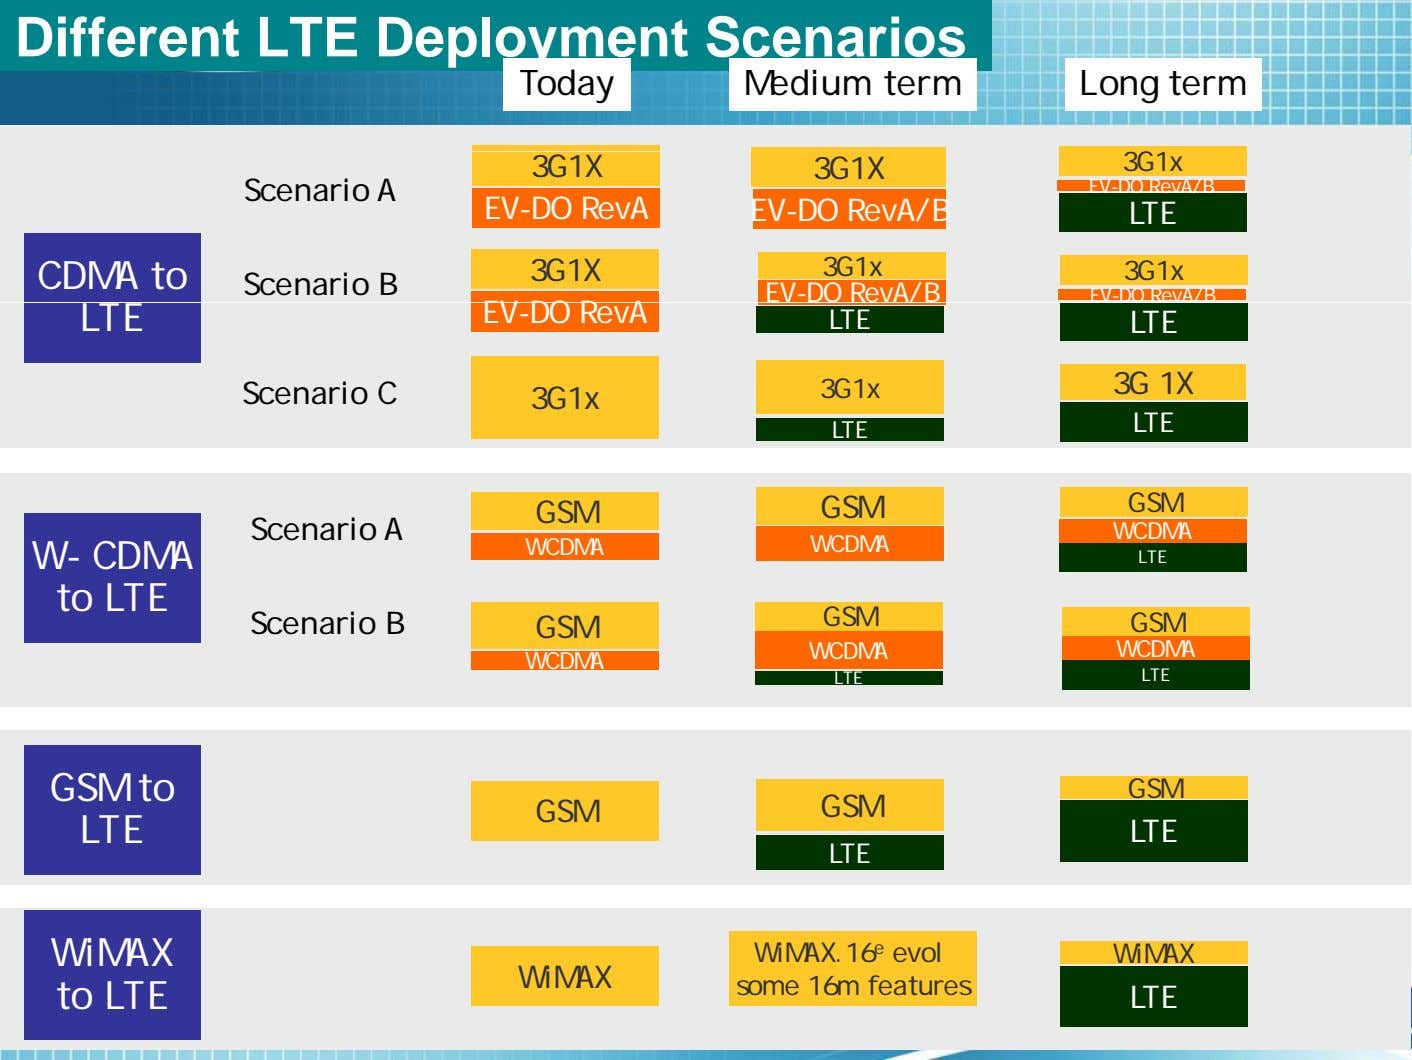 Different LTE Deployment Scenarios Today Medium term Long term 3G1X 3G1X 3G1x Scenario A EV-DO